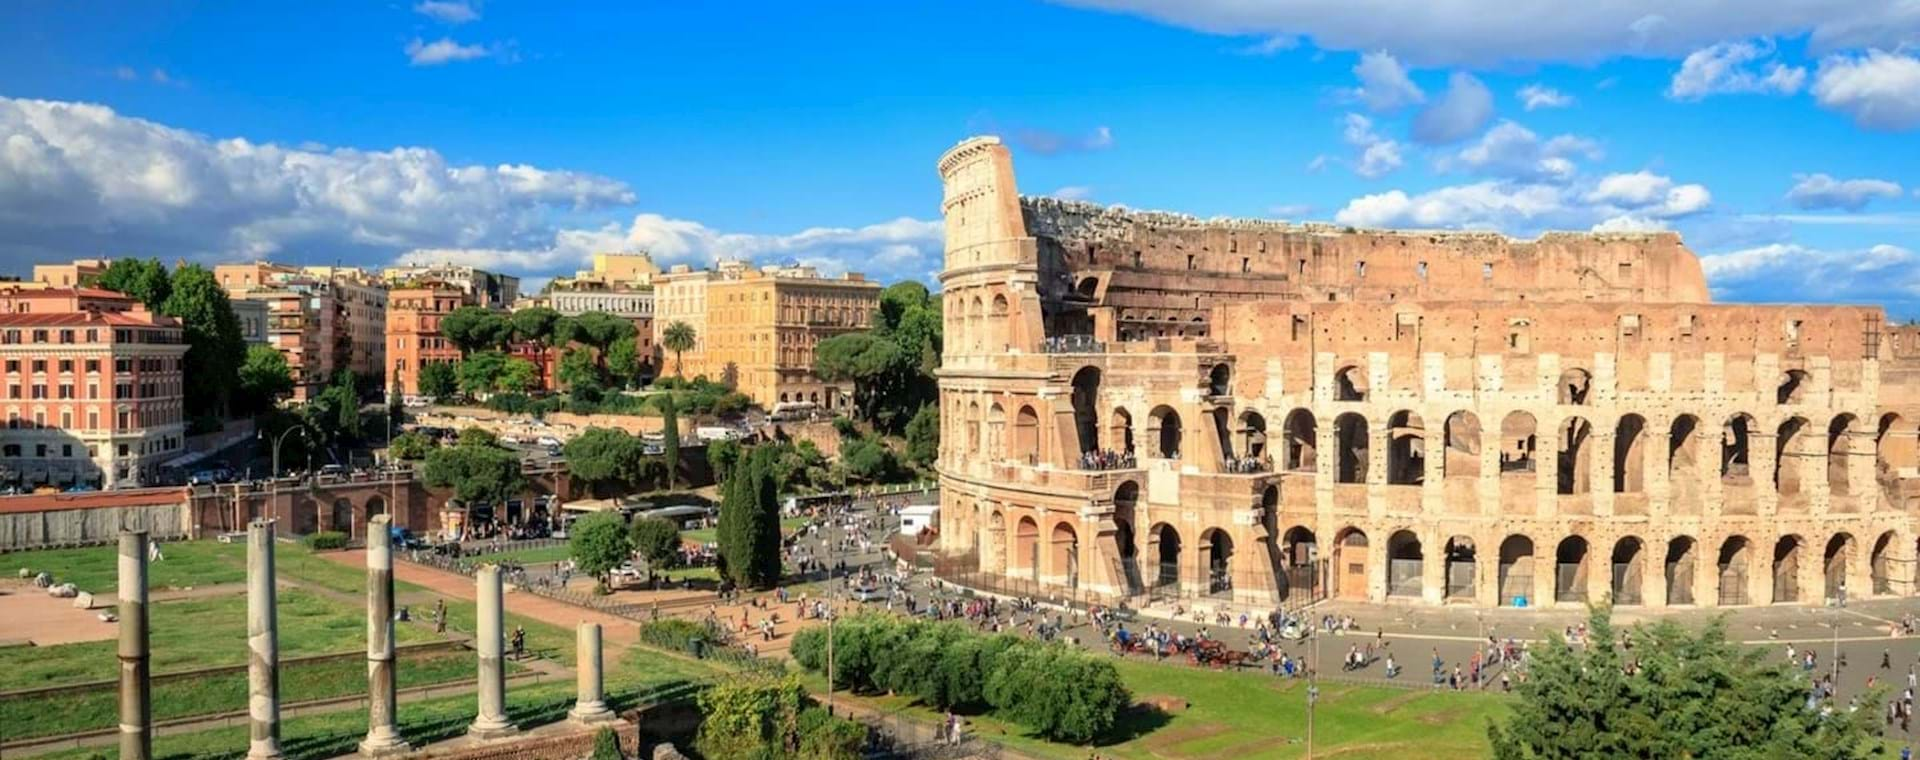 Colosseum Tour With Special Access to the 3th, 4th and 5th Levels, Roman Forum and Palatine Hill